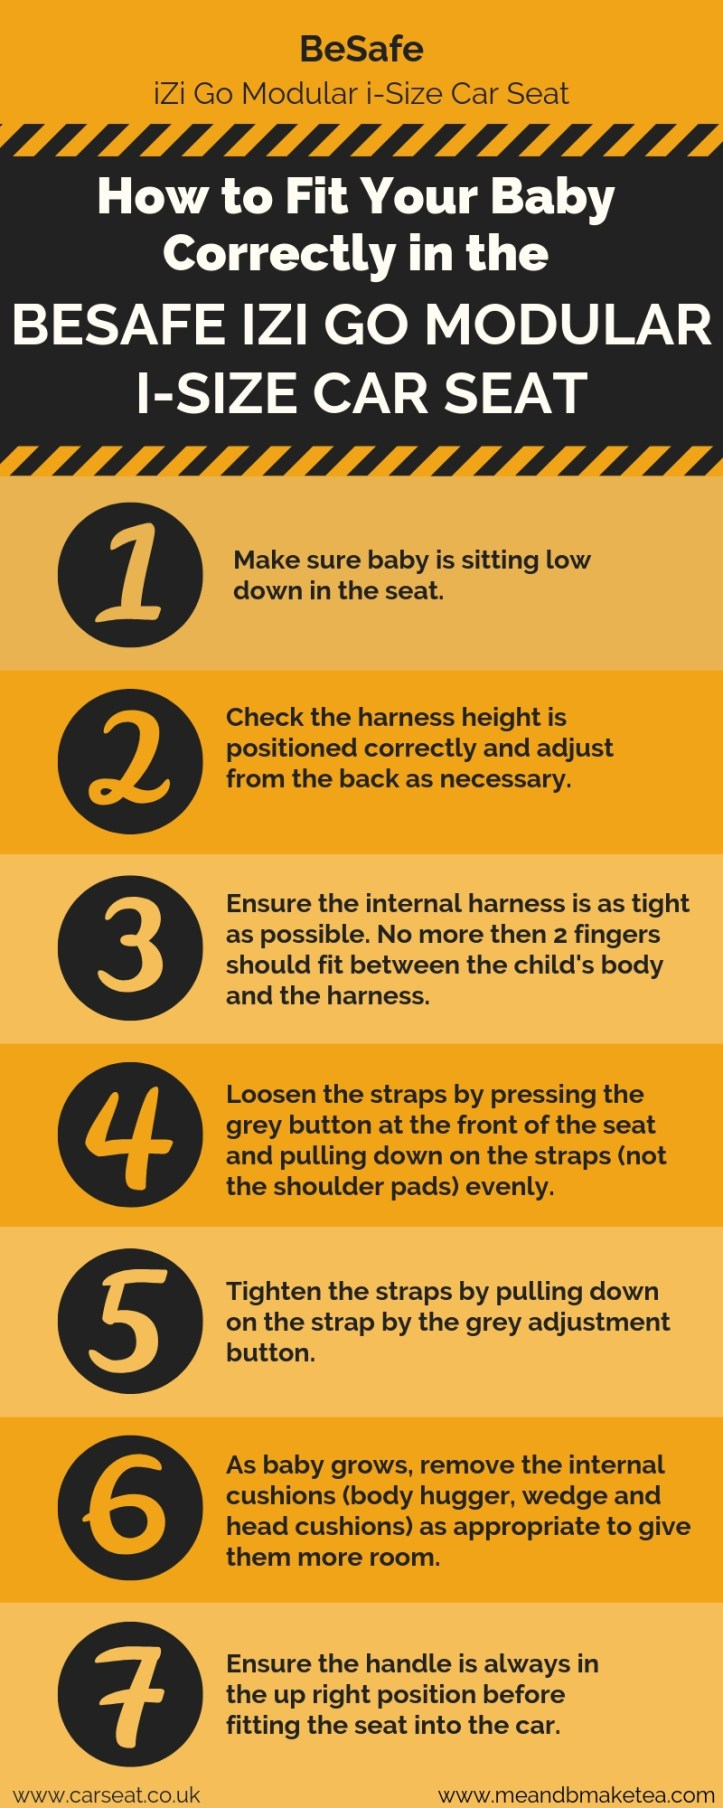 besafe izzi go modular car seat tips and tricks for the best fit.